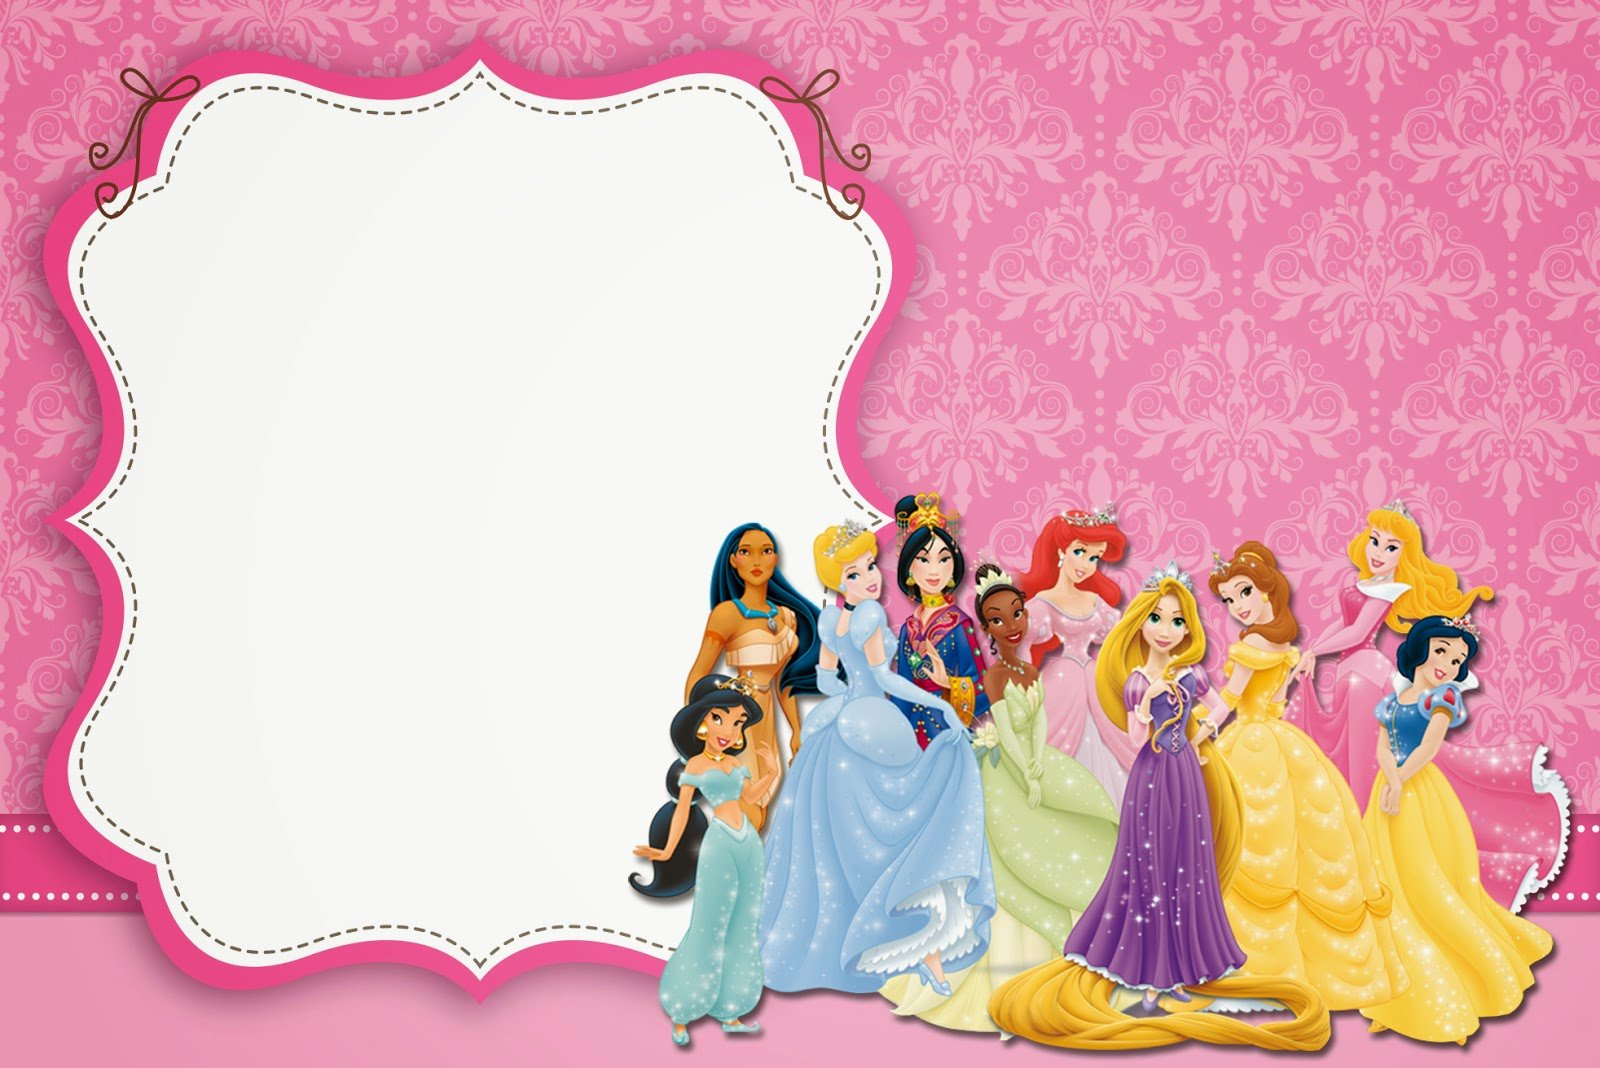 Disney Princess Invitation Template Beautiful Disney Princess Party Free Printable Party Invitations